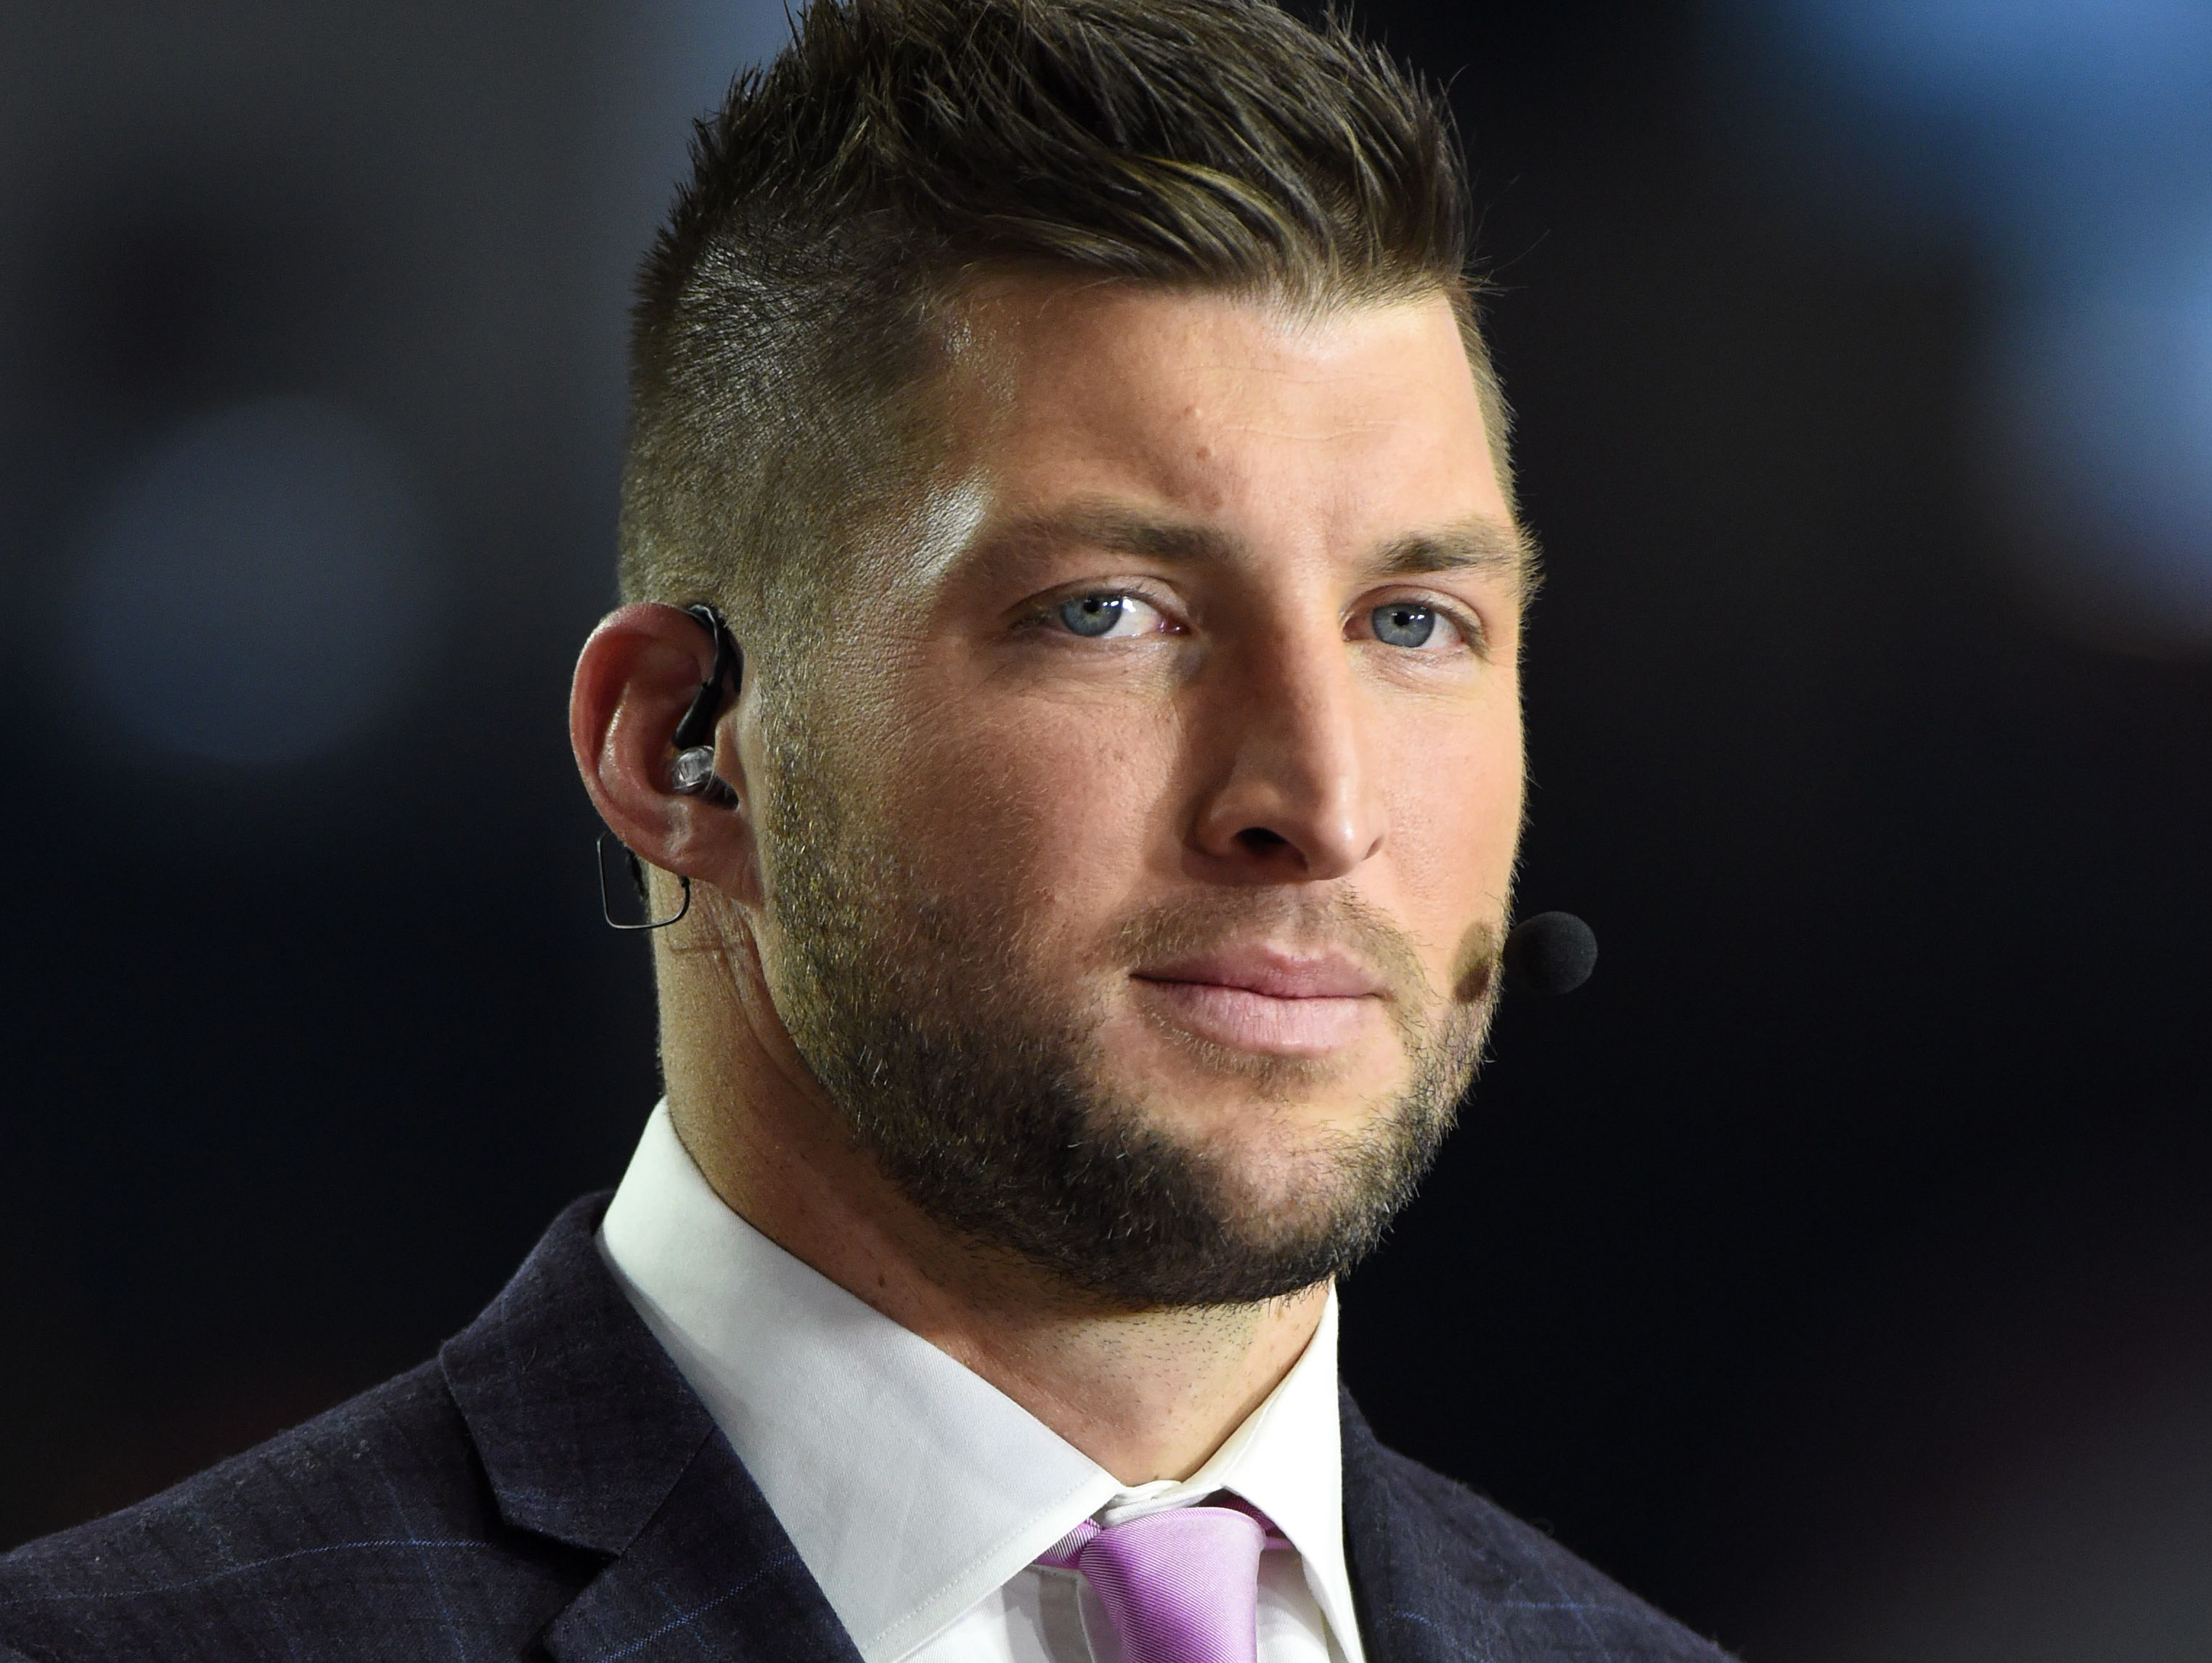 Kirby Lee, USA TODAY Sports Jan 11, 2016; Glendale, AZ, USA; ESPN analyst Tim Tebow before the 2016 CFP National Championship between the Clemson Tigers and the Alabama Crimson Tide at University of Phoenix Stadium. Mandatory Credit: Kirby Lee-USA TODAY Sports ORG XMIT: USATSI-233884 ORIG FILE ID: 20160111_pjc_al2_029.JPG